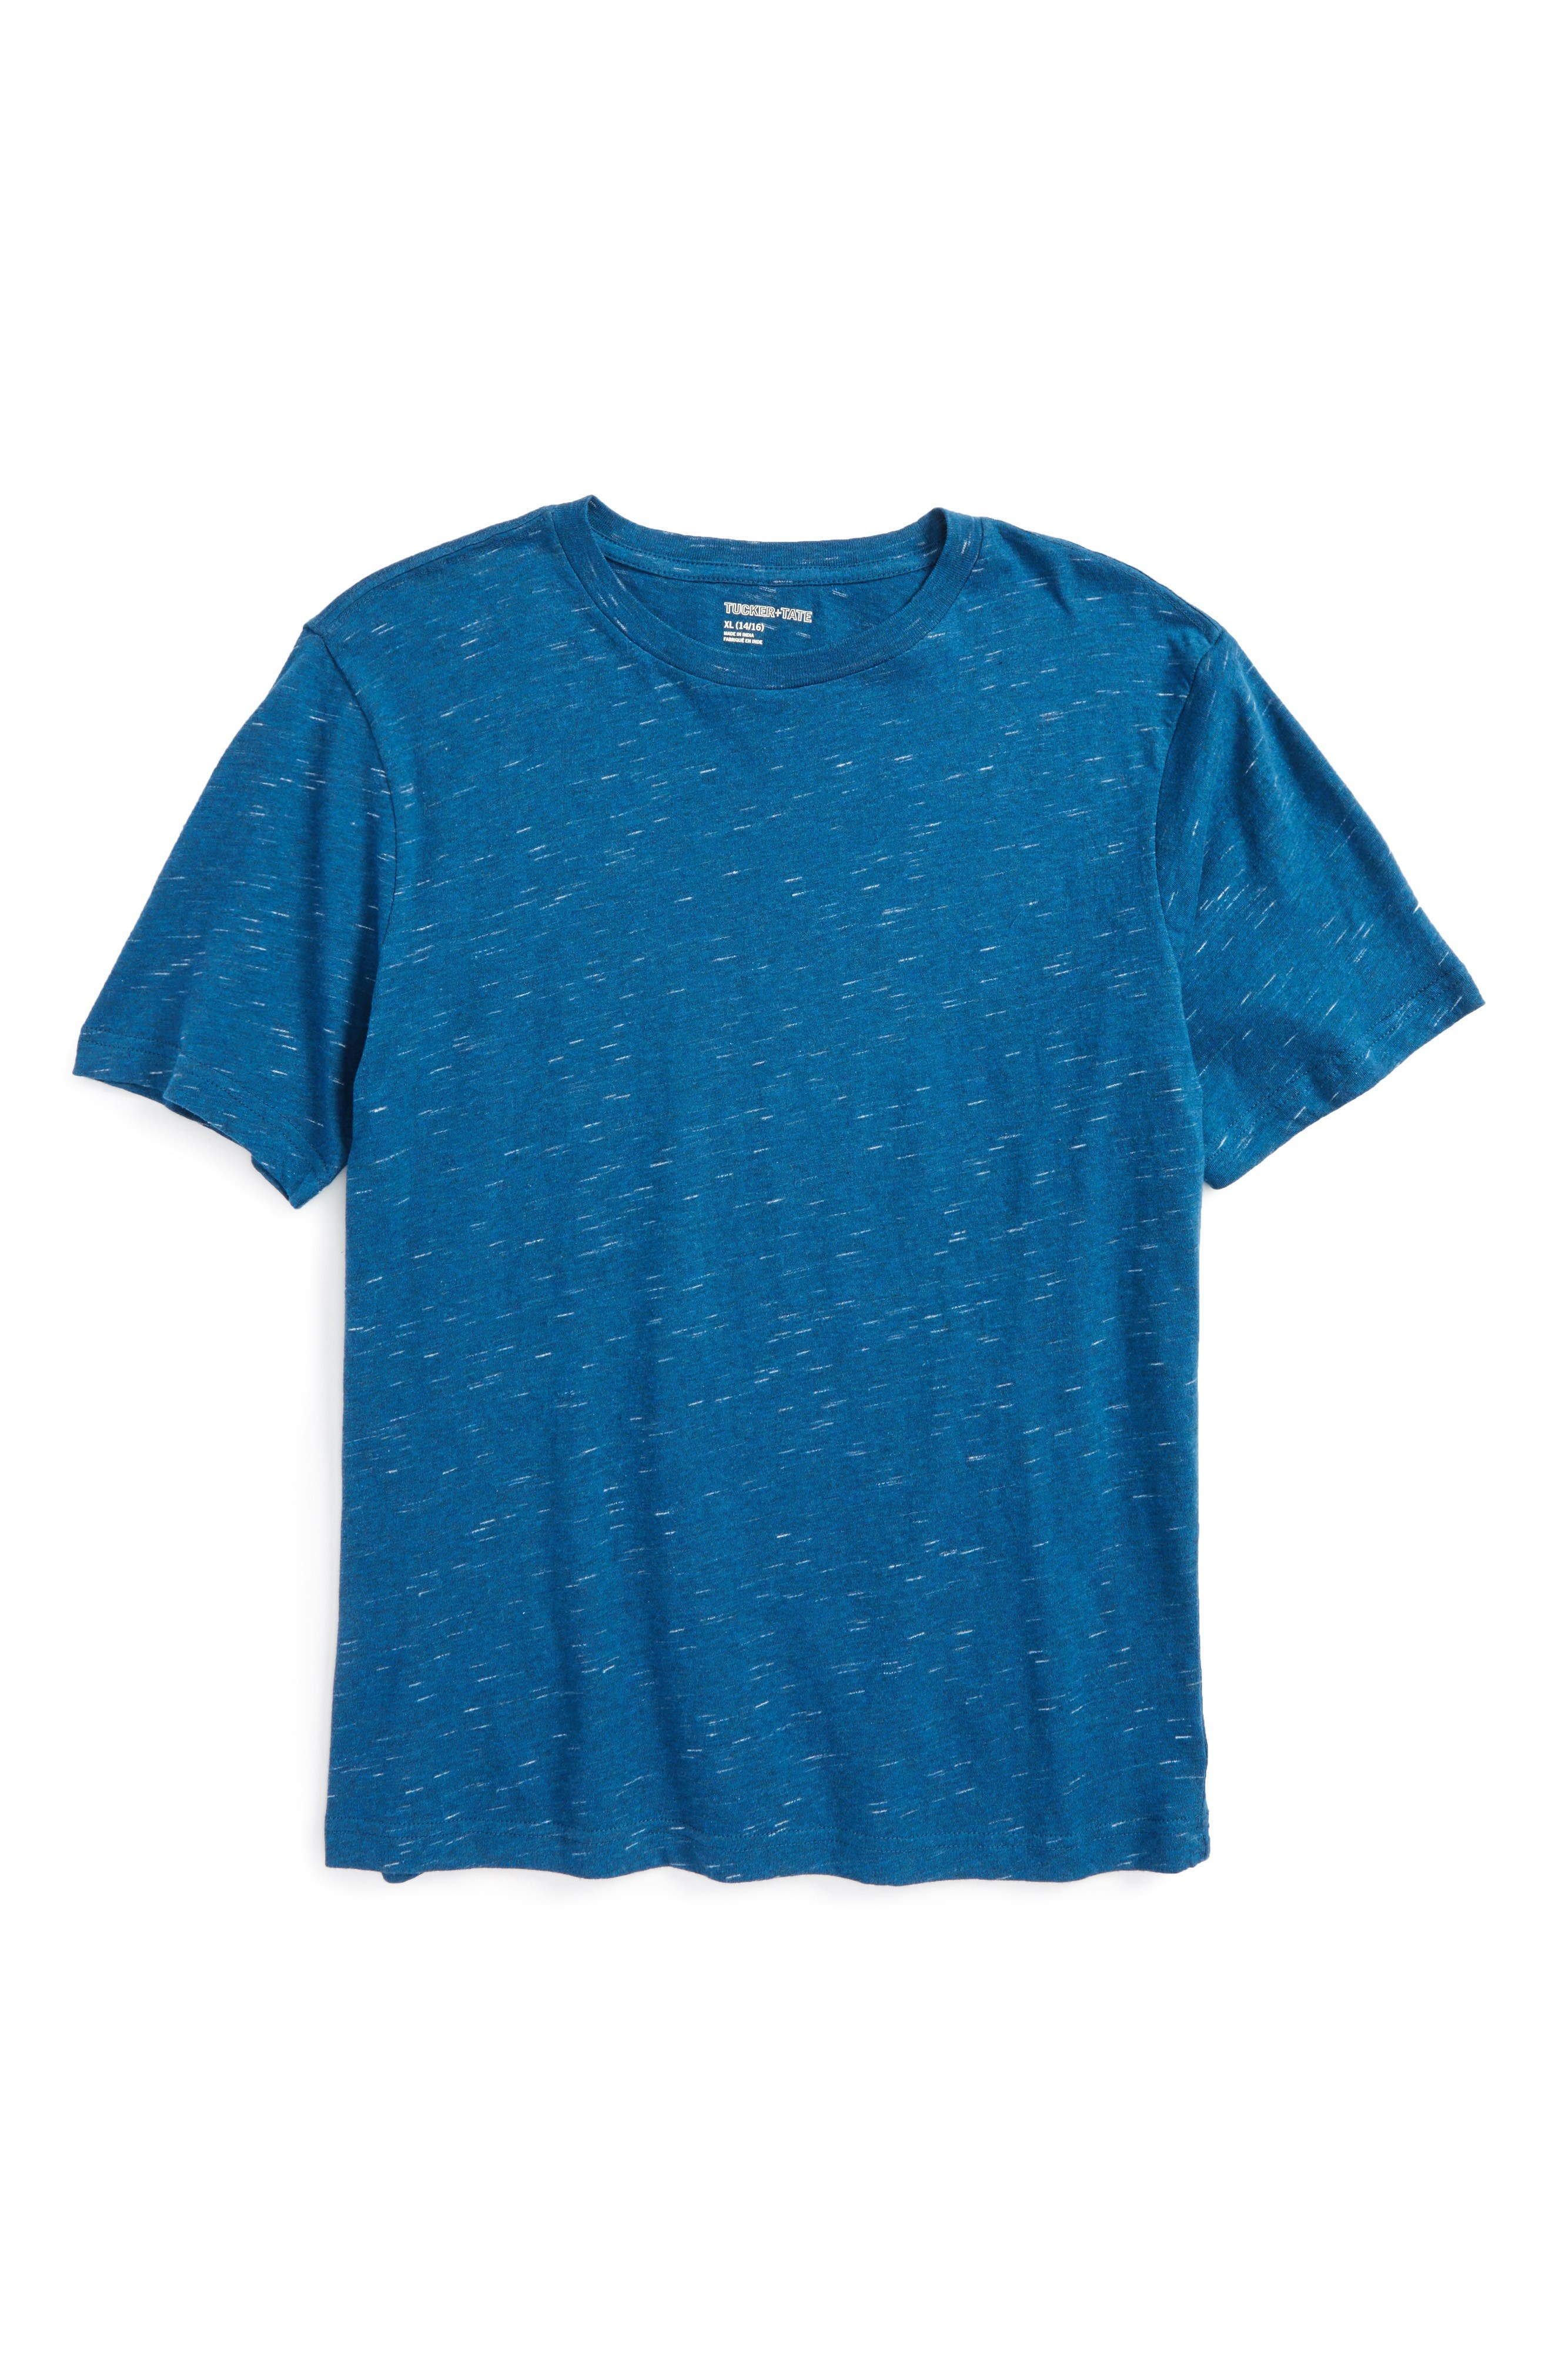 TUCKER + TATE Slub Knit T-Shirt